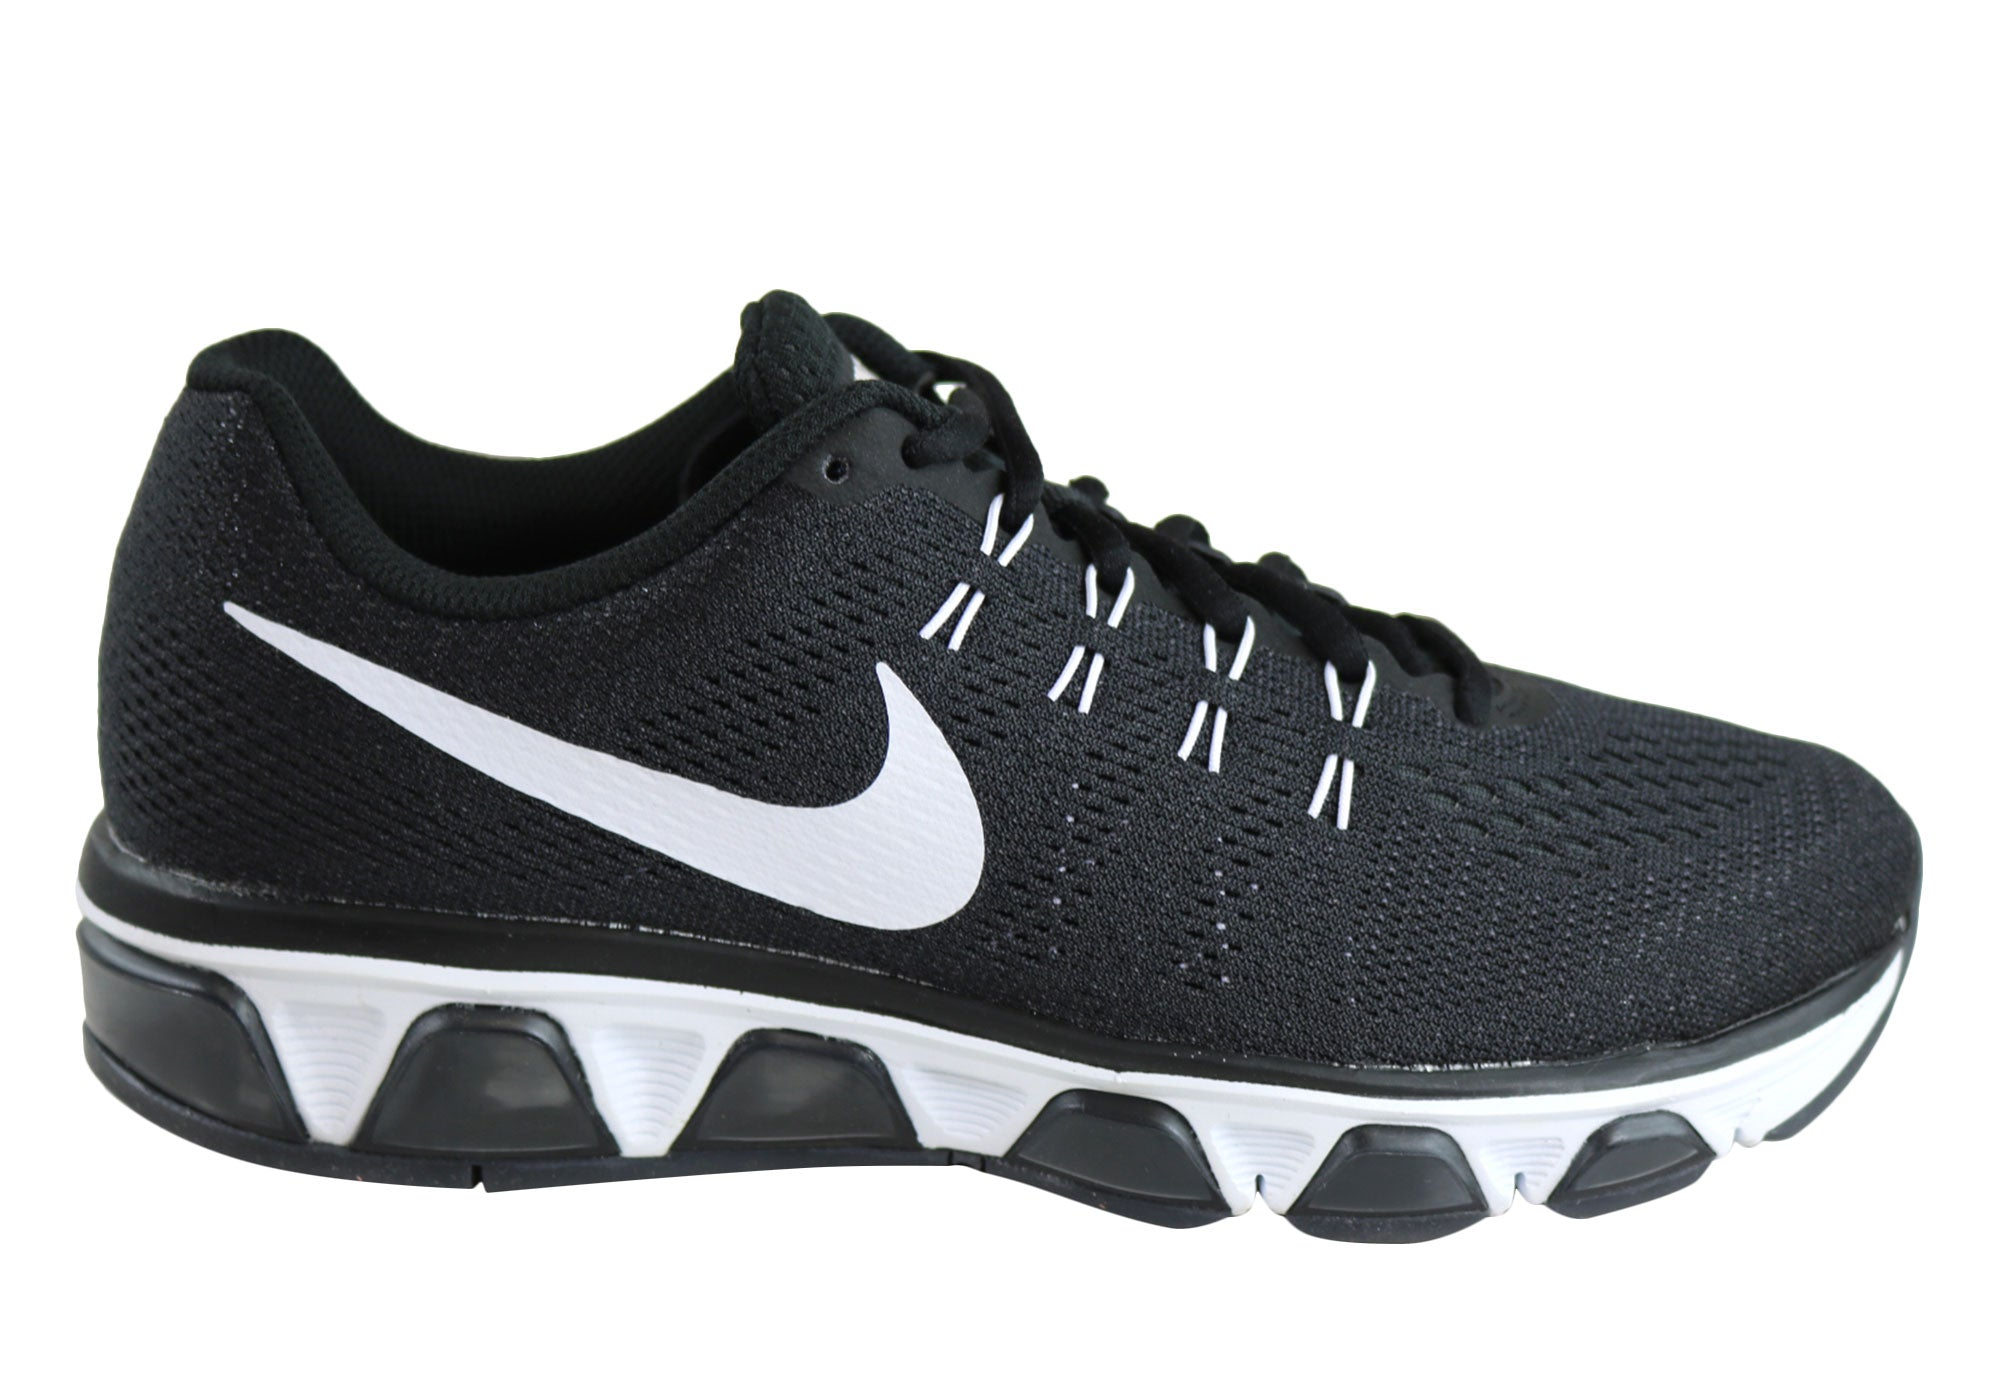 f09d0d6df57a5 Home Nike Womens Air Max Tailwind 8 Running Sport Shoes. Black  ...